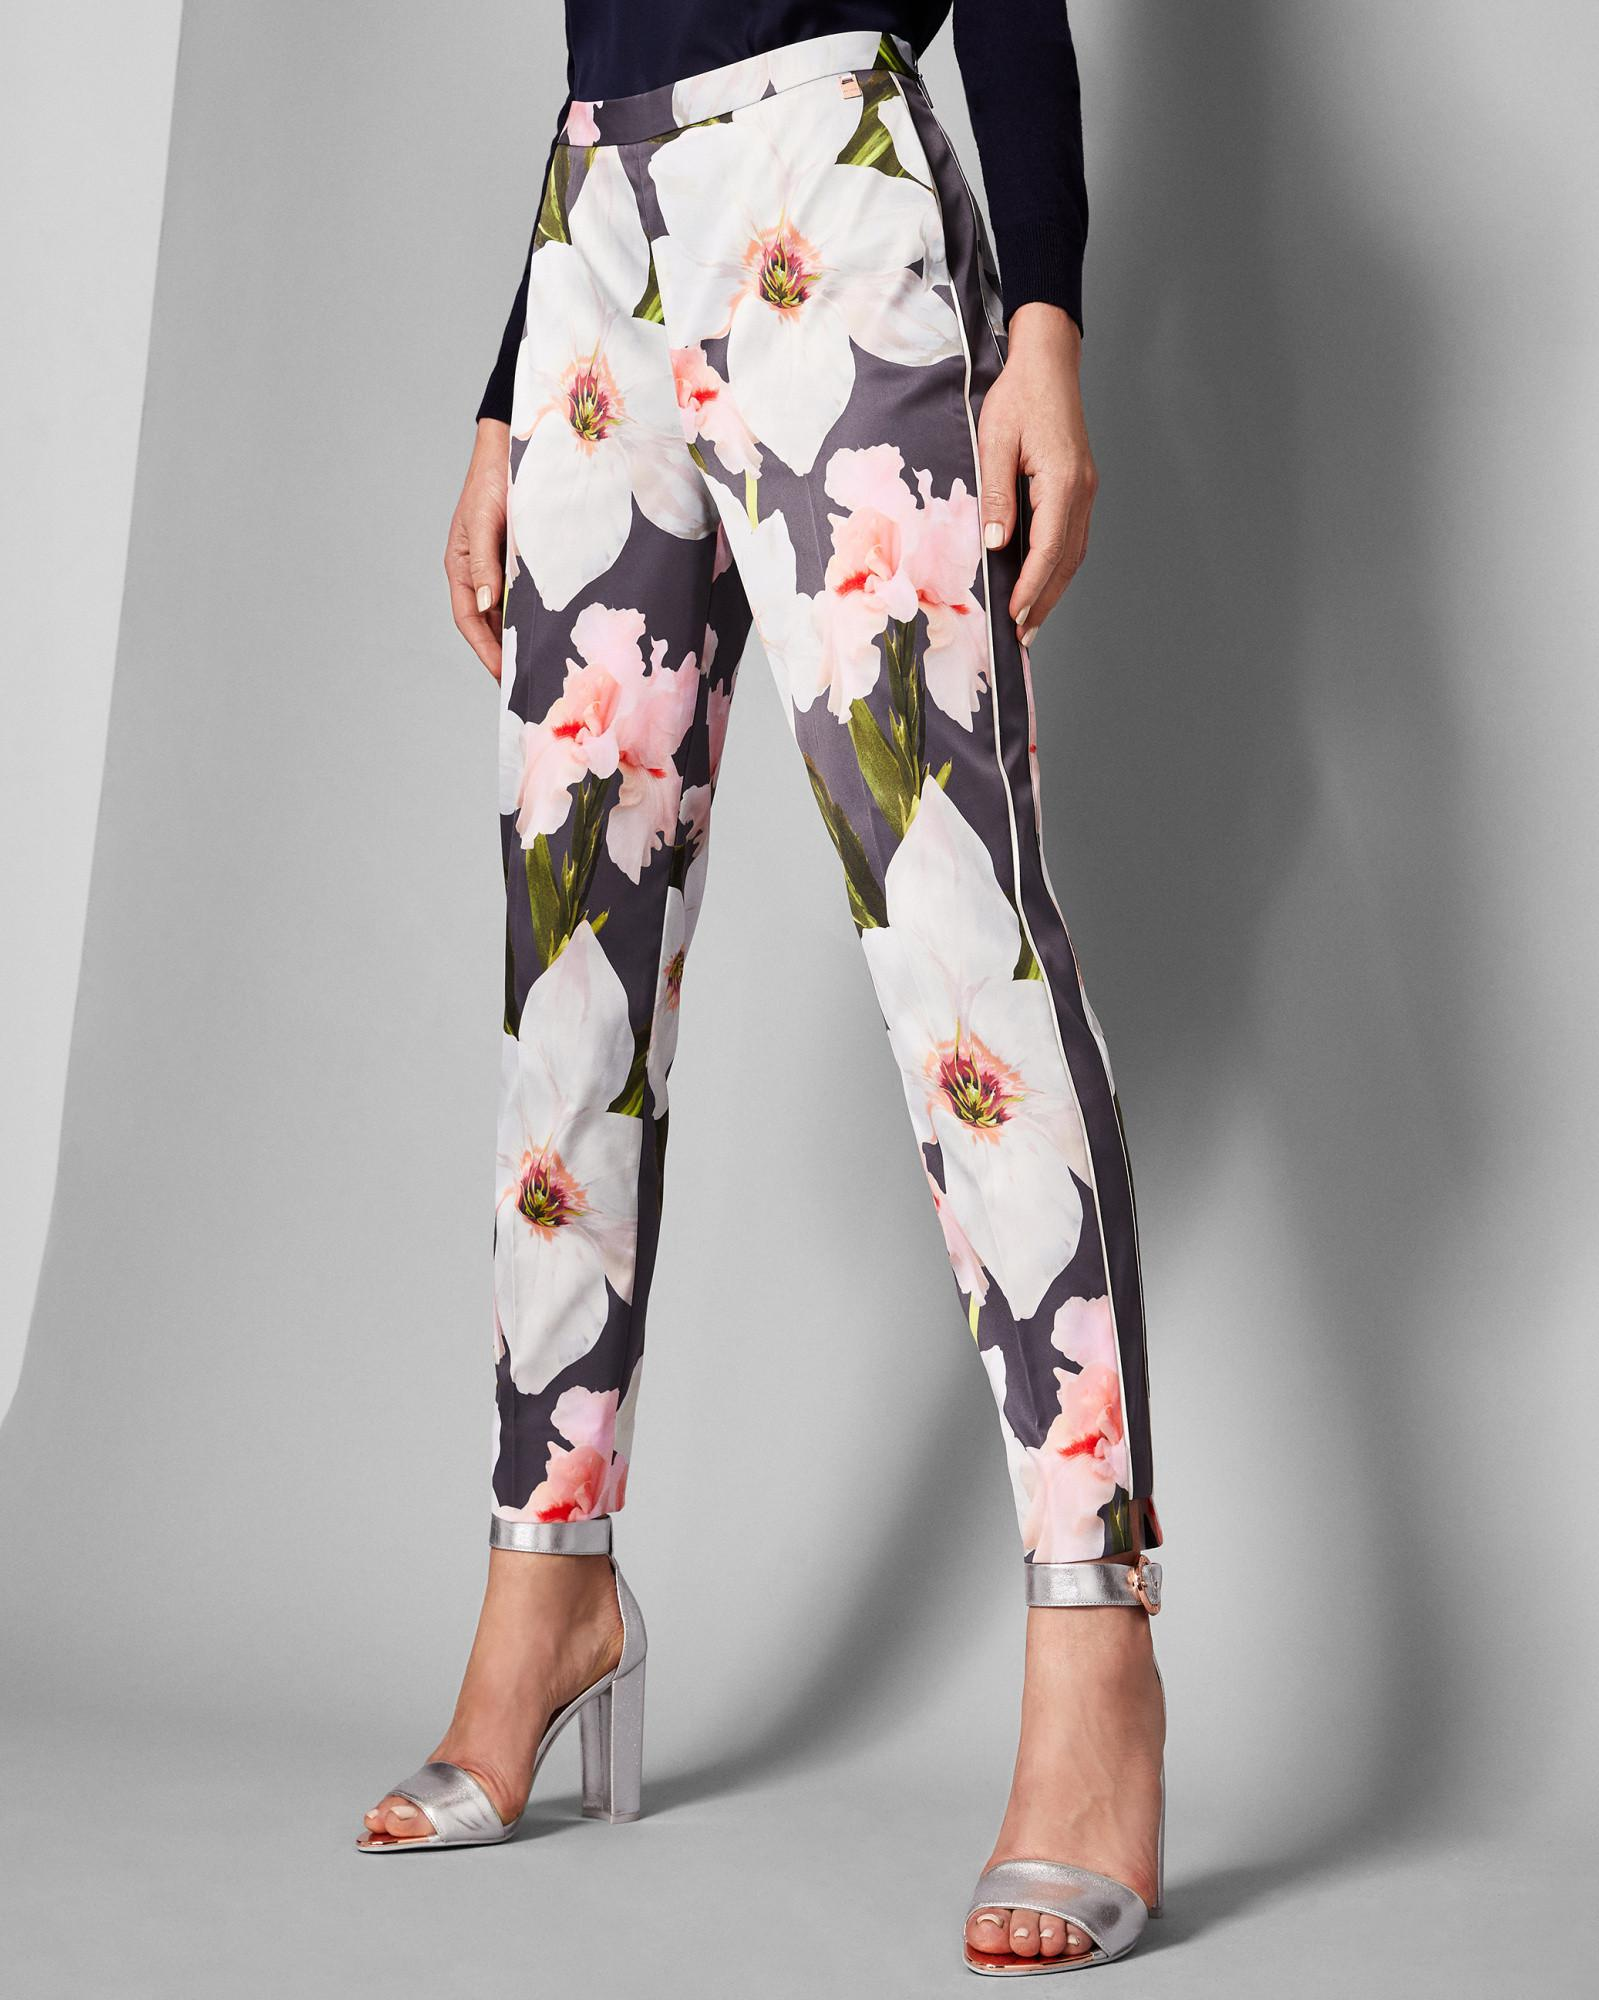 db5fdb0e7e3dc Ted Baker Chatsworth Tapered Trousers in Gray - Lyst